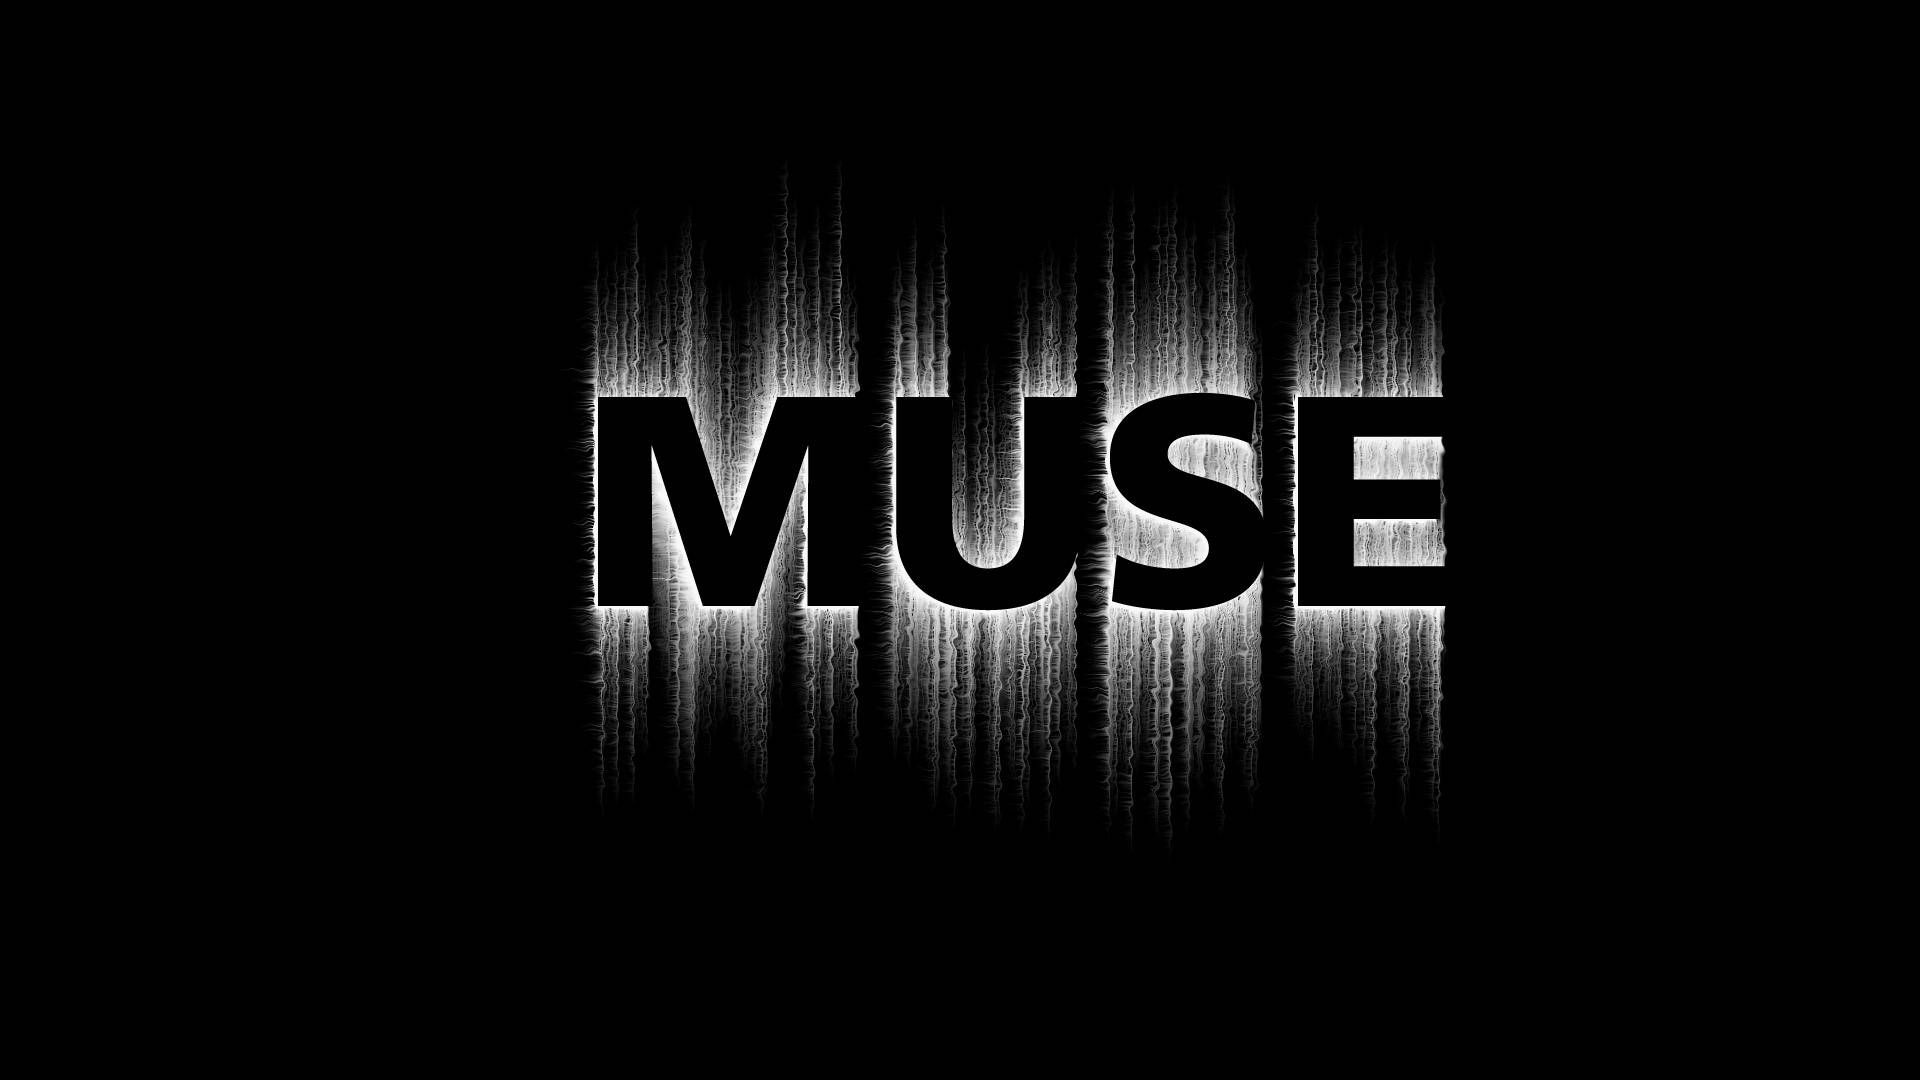 Muse resistance desktop wallpaper by quiniy on deviantart hd muse resistance desktop wallpaper by quiniy on deviantart voltagebd Gallery